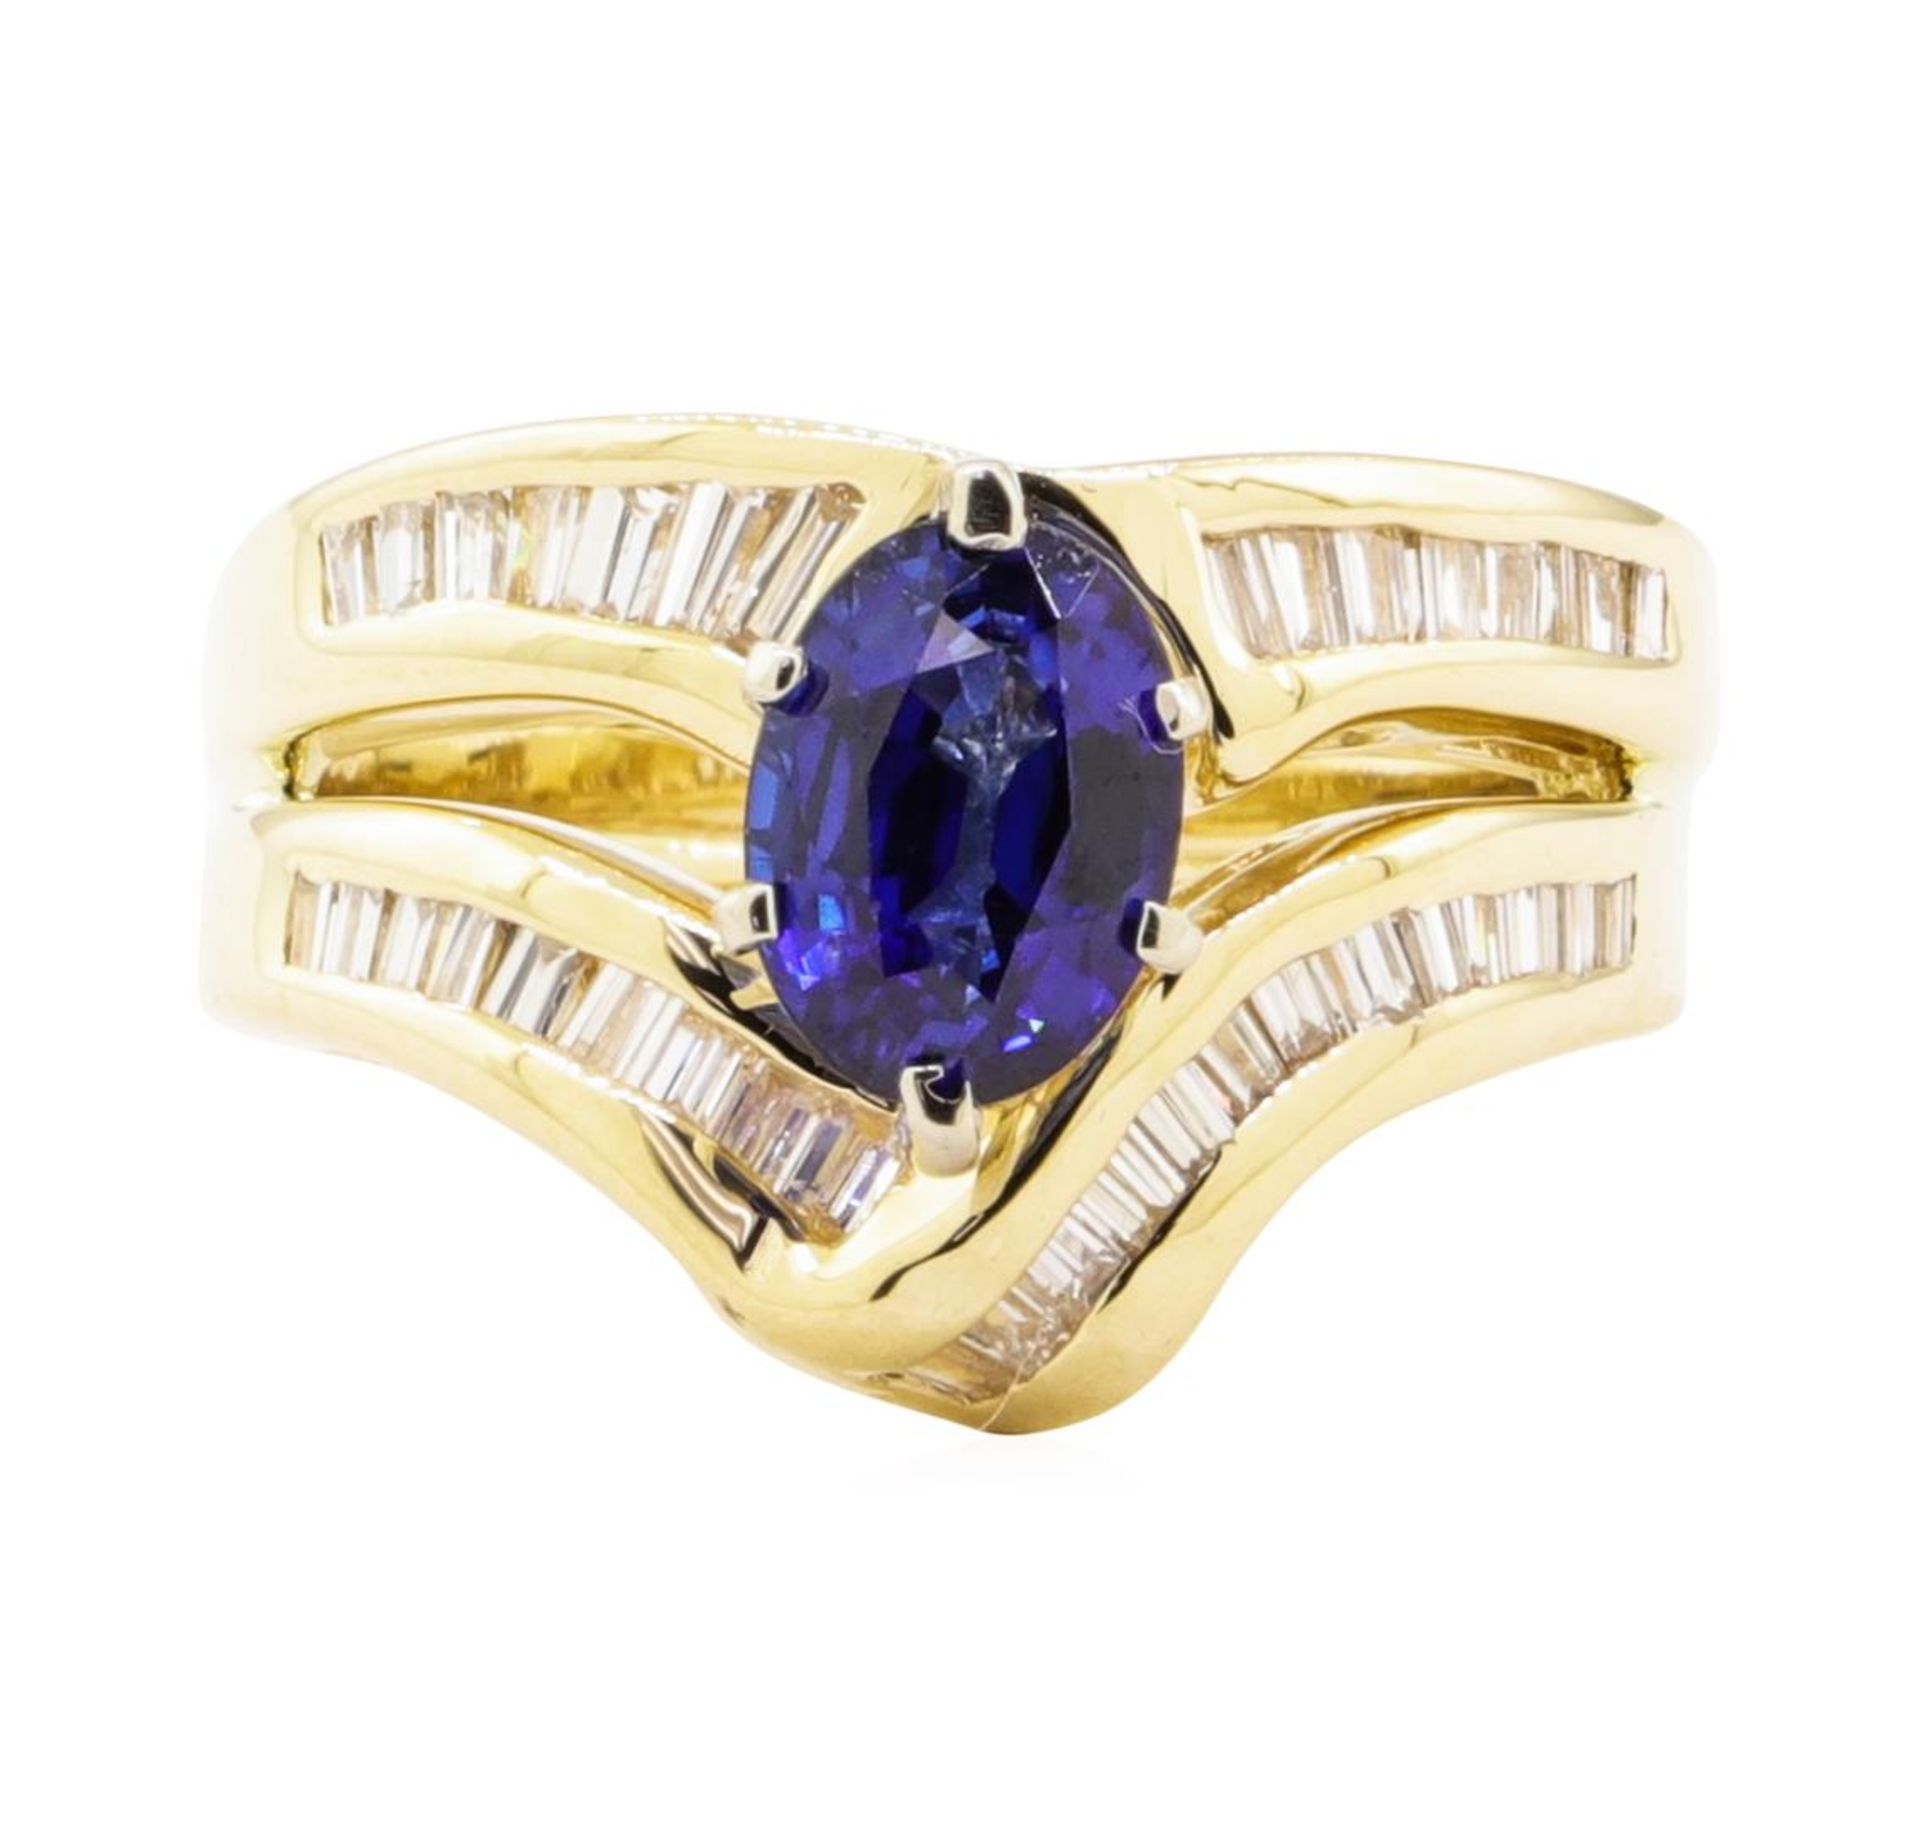 2.28 ctw Blue Sapphire And Diamond Ring And Attached Band - 14KT Yellow Gold - Image 2 of 5